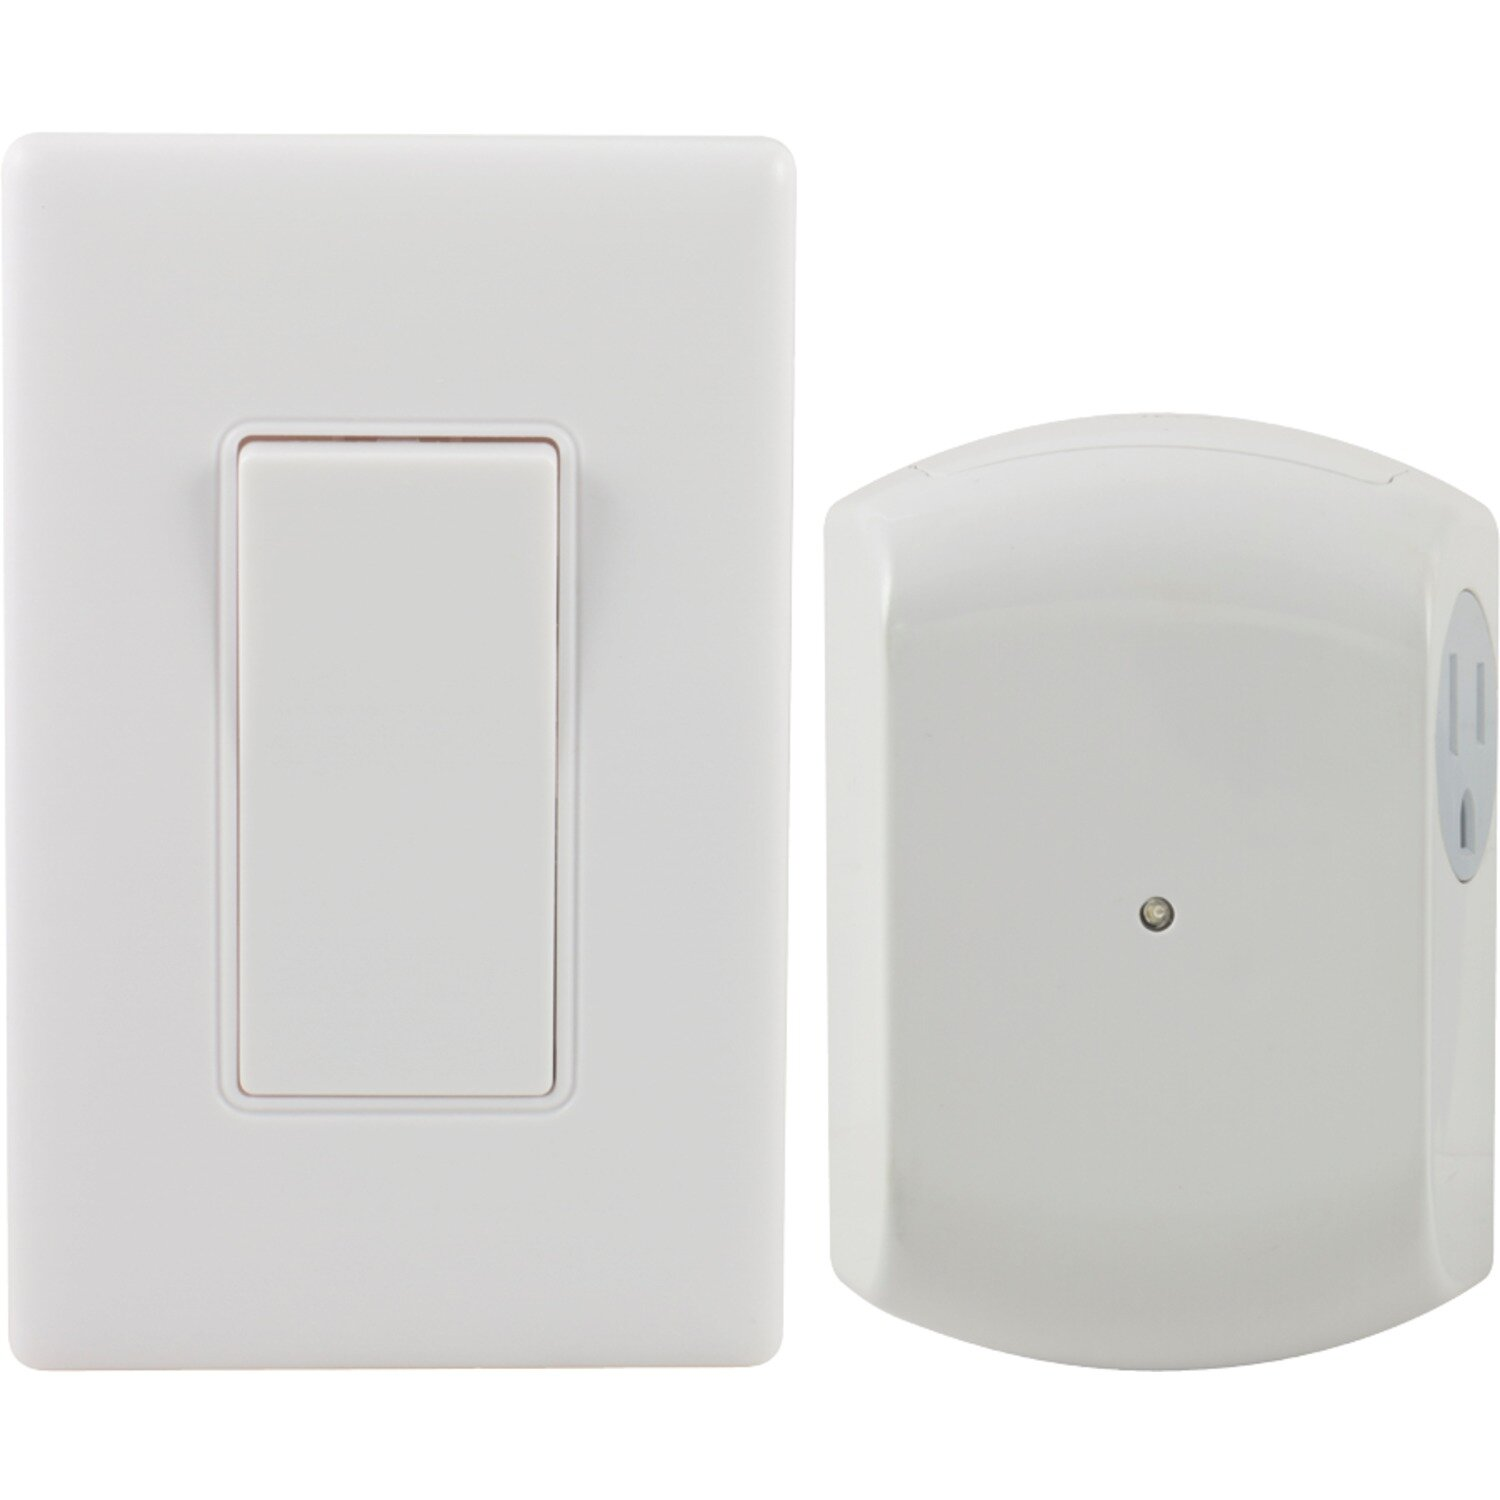 GE Wireless Switch Light Control Wall Mounted Outlet | Wayfair.ca